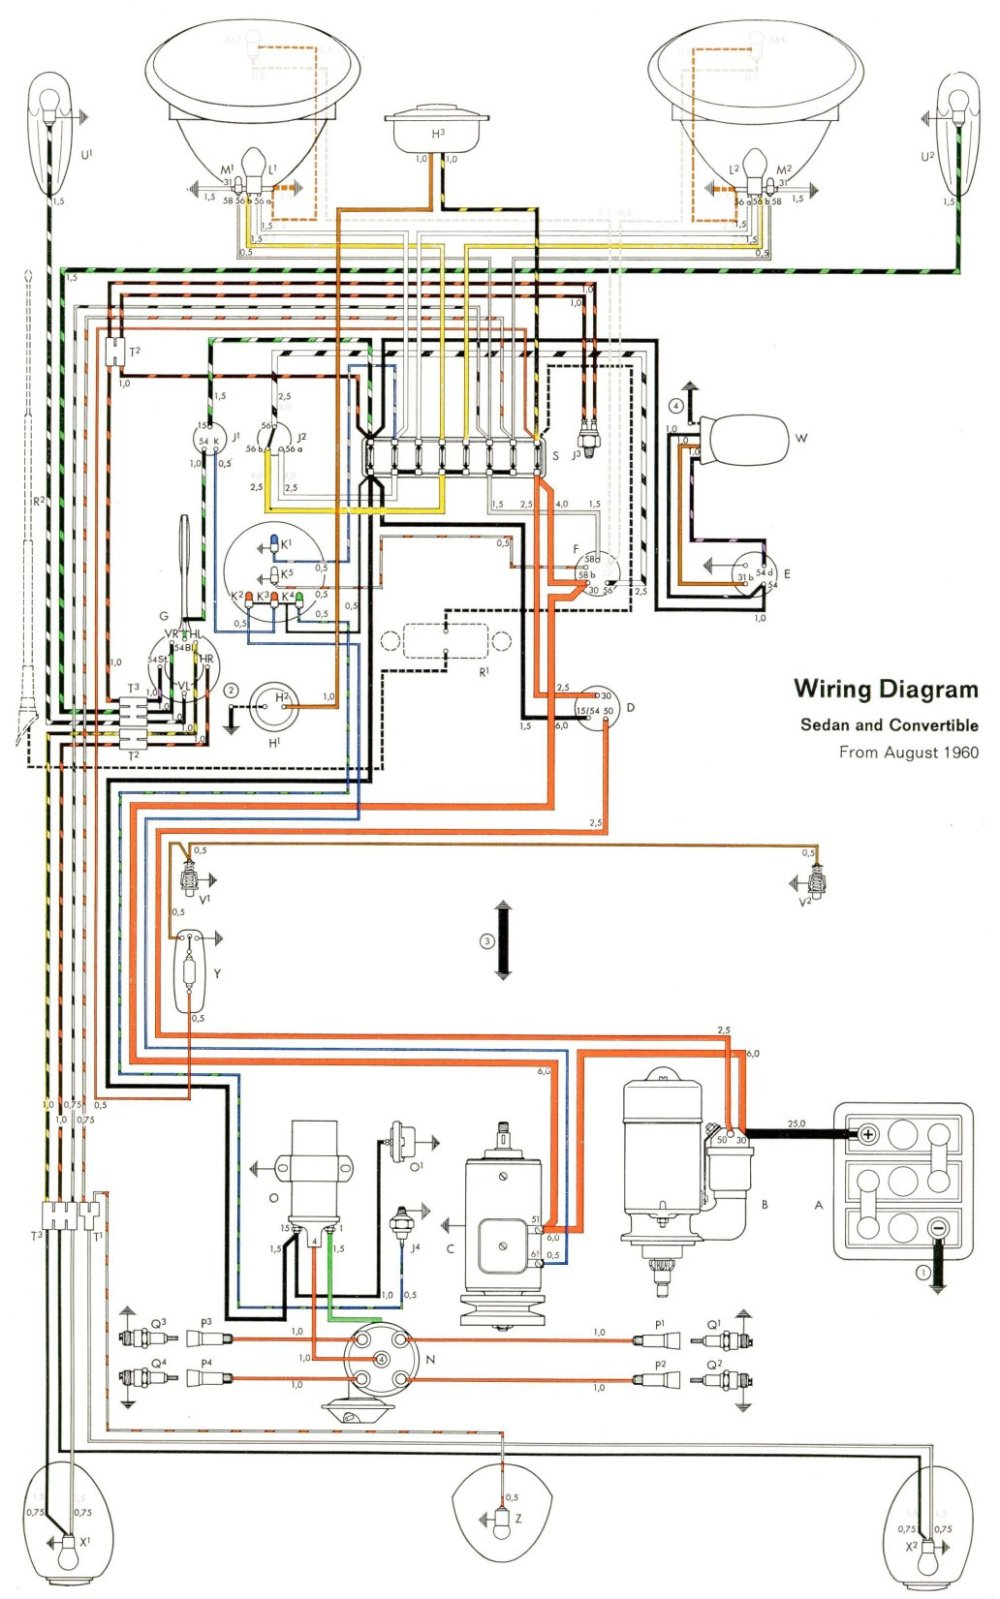 medium resolution of thesamba com type 1 wiring diagrams 1974 volkswagen wiring diagram 1974 vw wiring diagrams